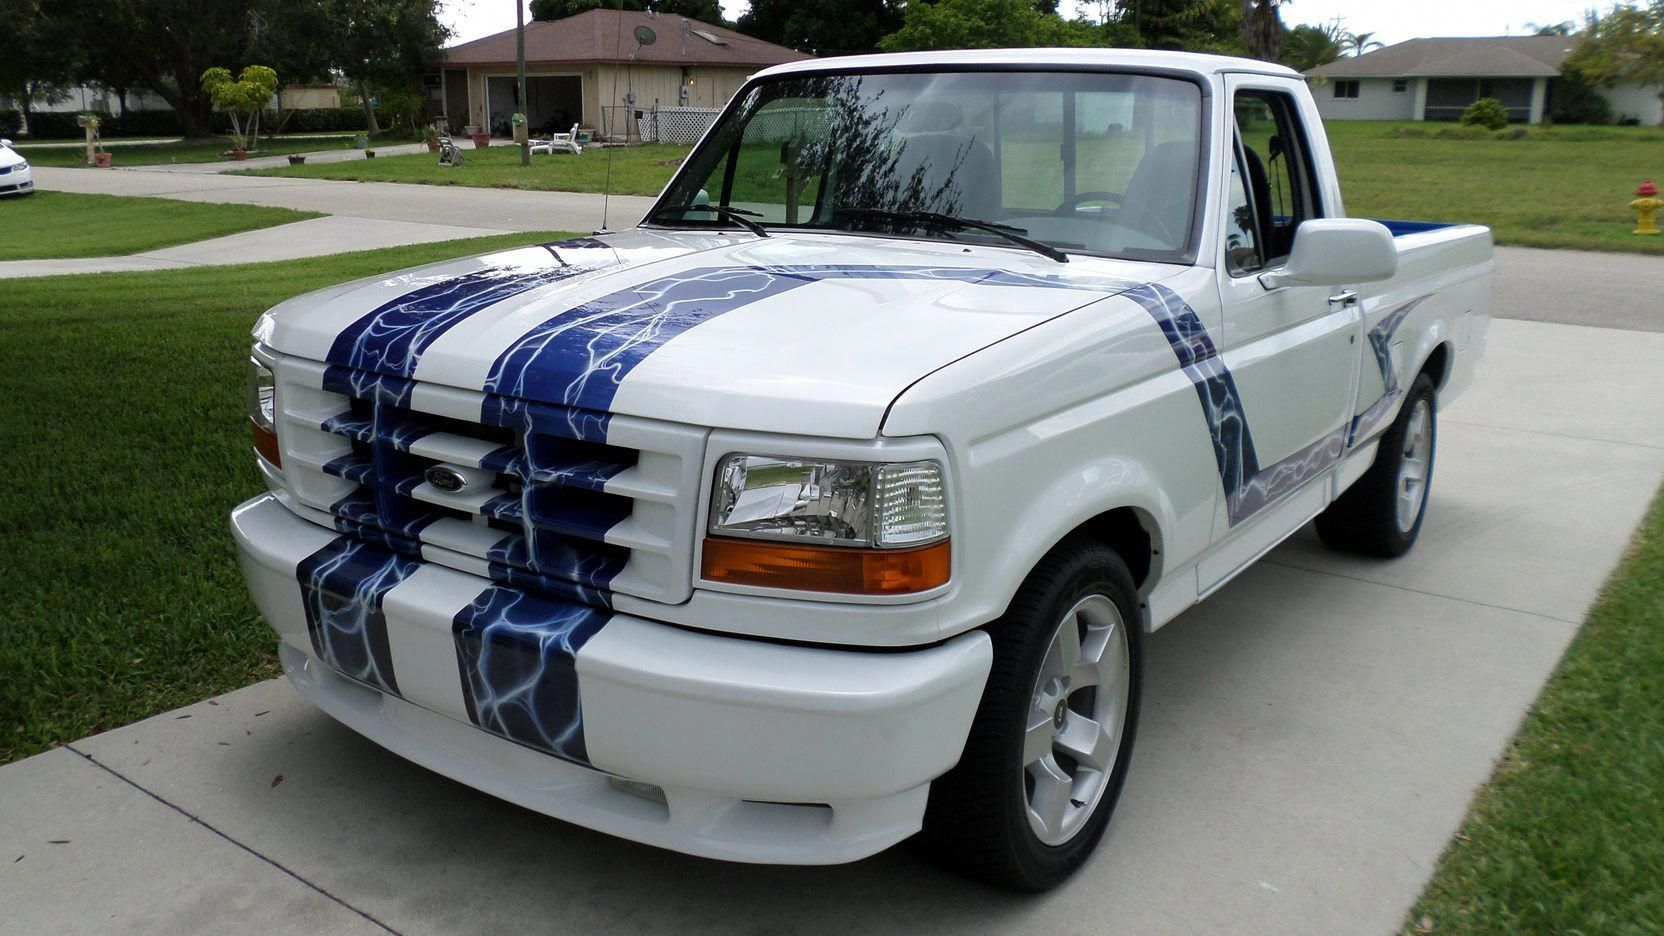 Wowzas I Quite Appreciate This Color Choice For This Camofordranger Ford Svt Svt Lightning Ford Lightning